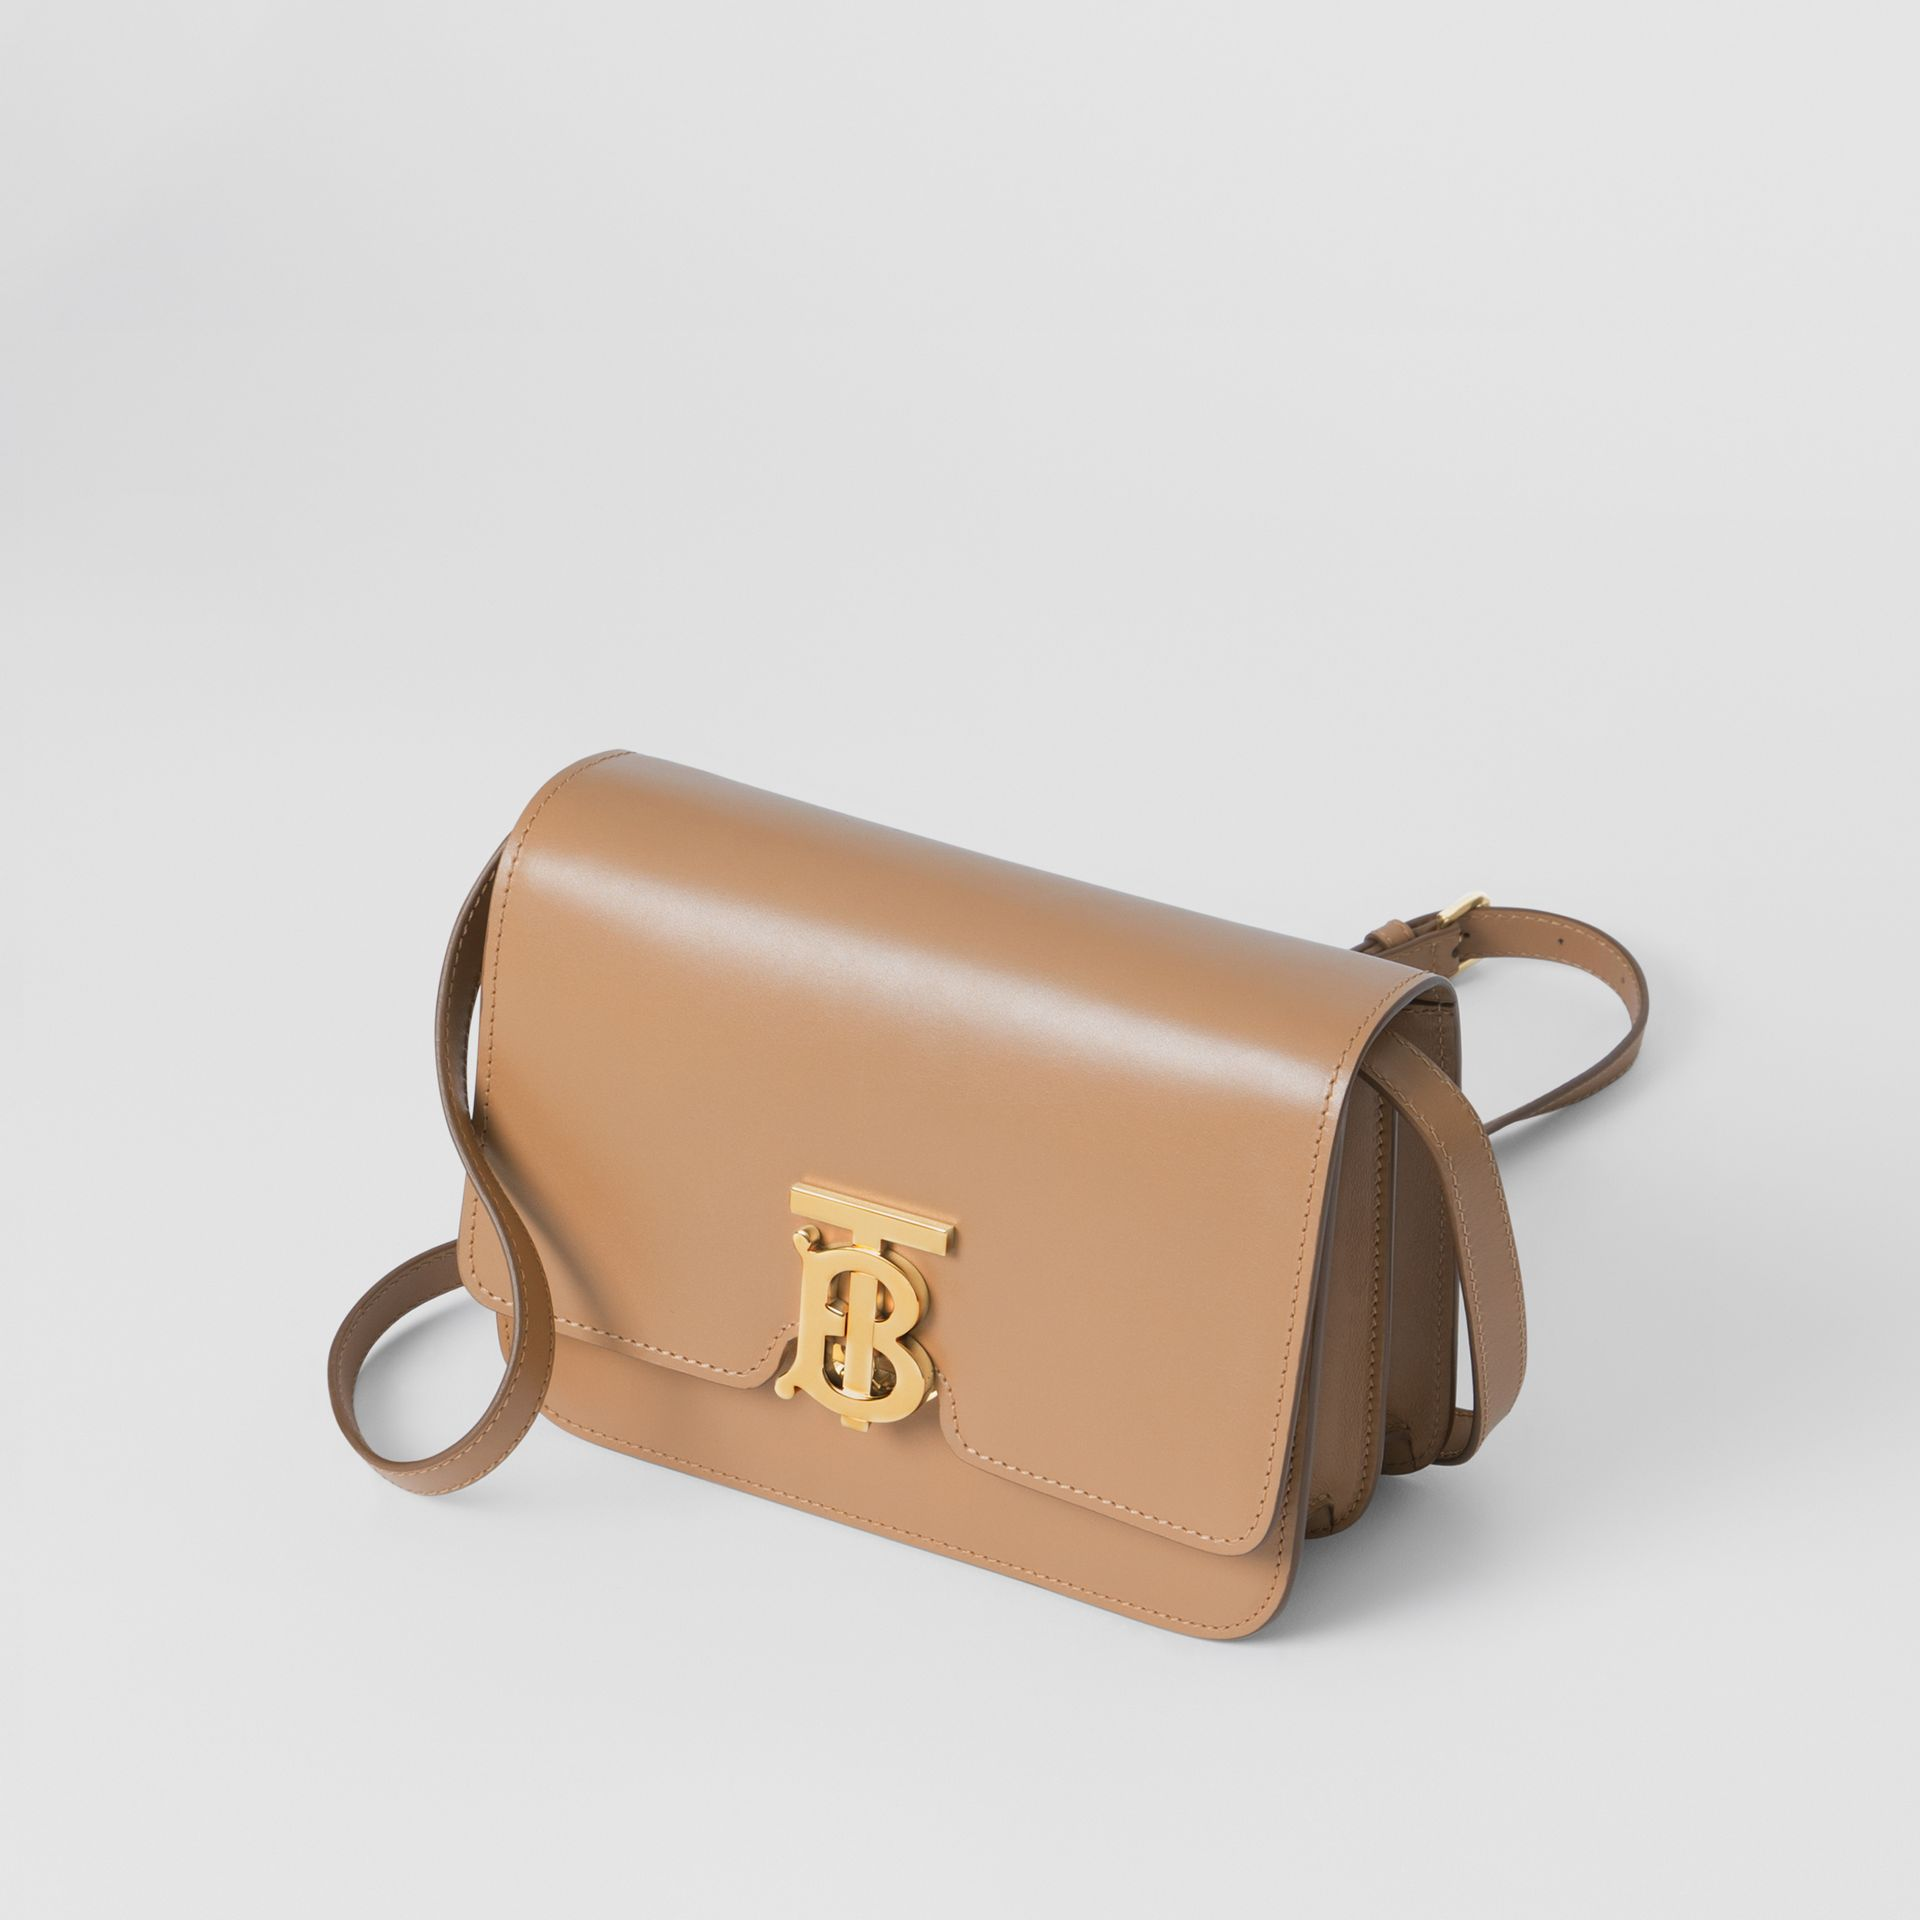 Small Leather TB Bag in Light Camel - Women | Burberry - gallery image 2